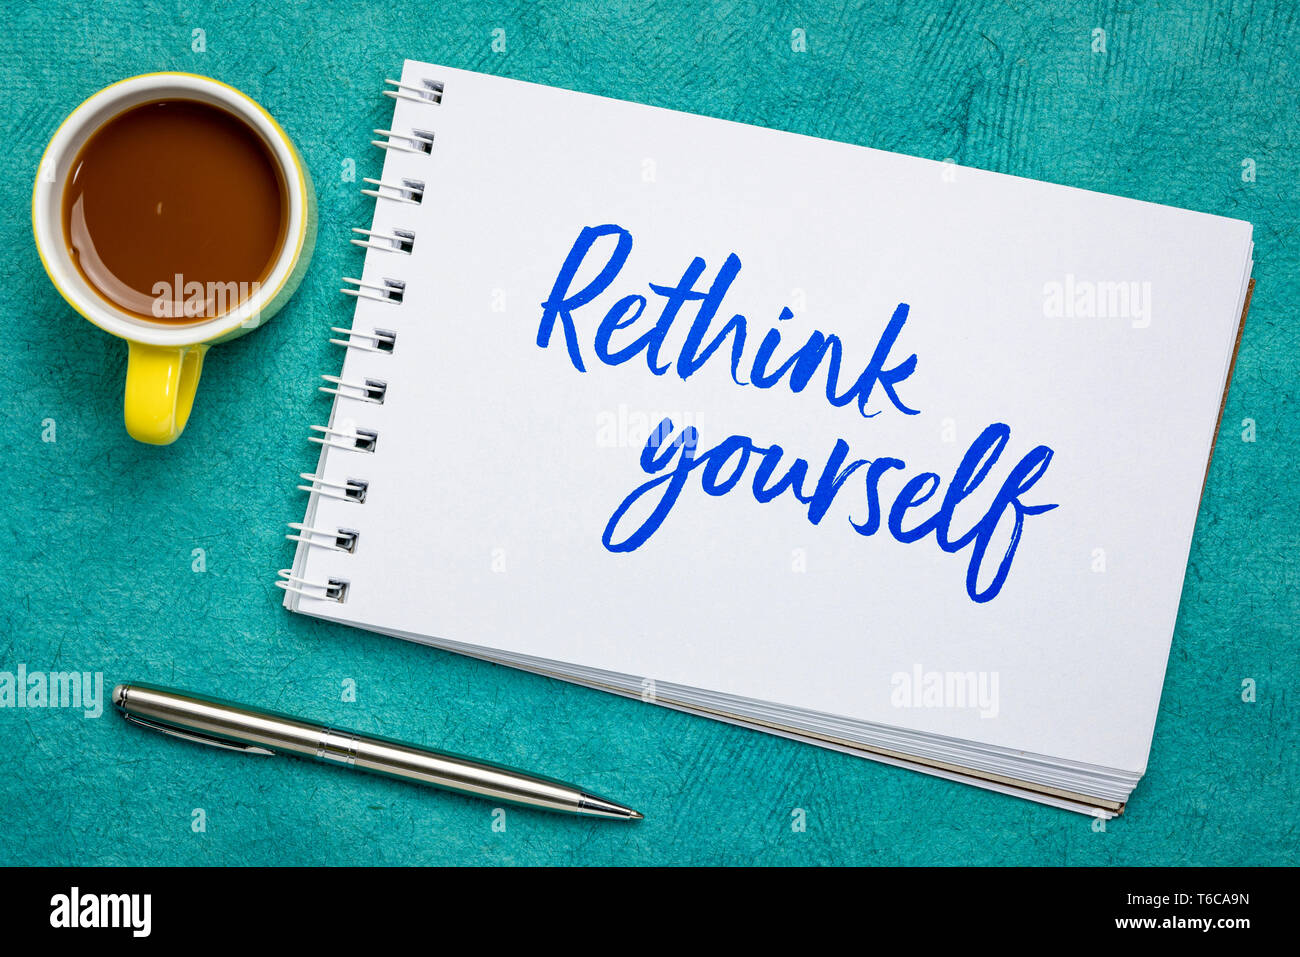 rethink yourself - advice or reminder note, handwriting in a spiral art sketchbook against against textured bark paper with a cup of coffee - Stock Image